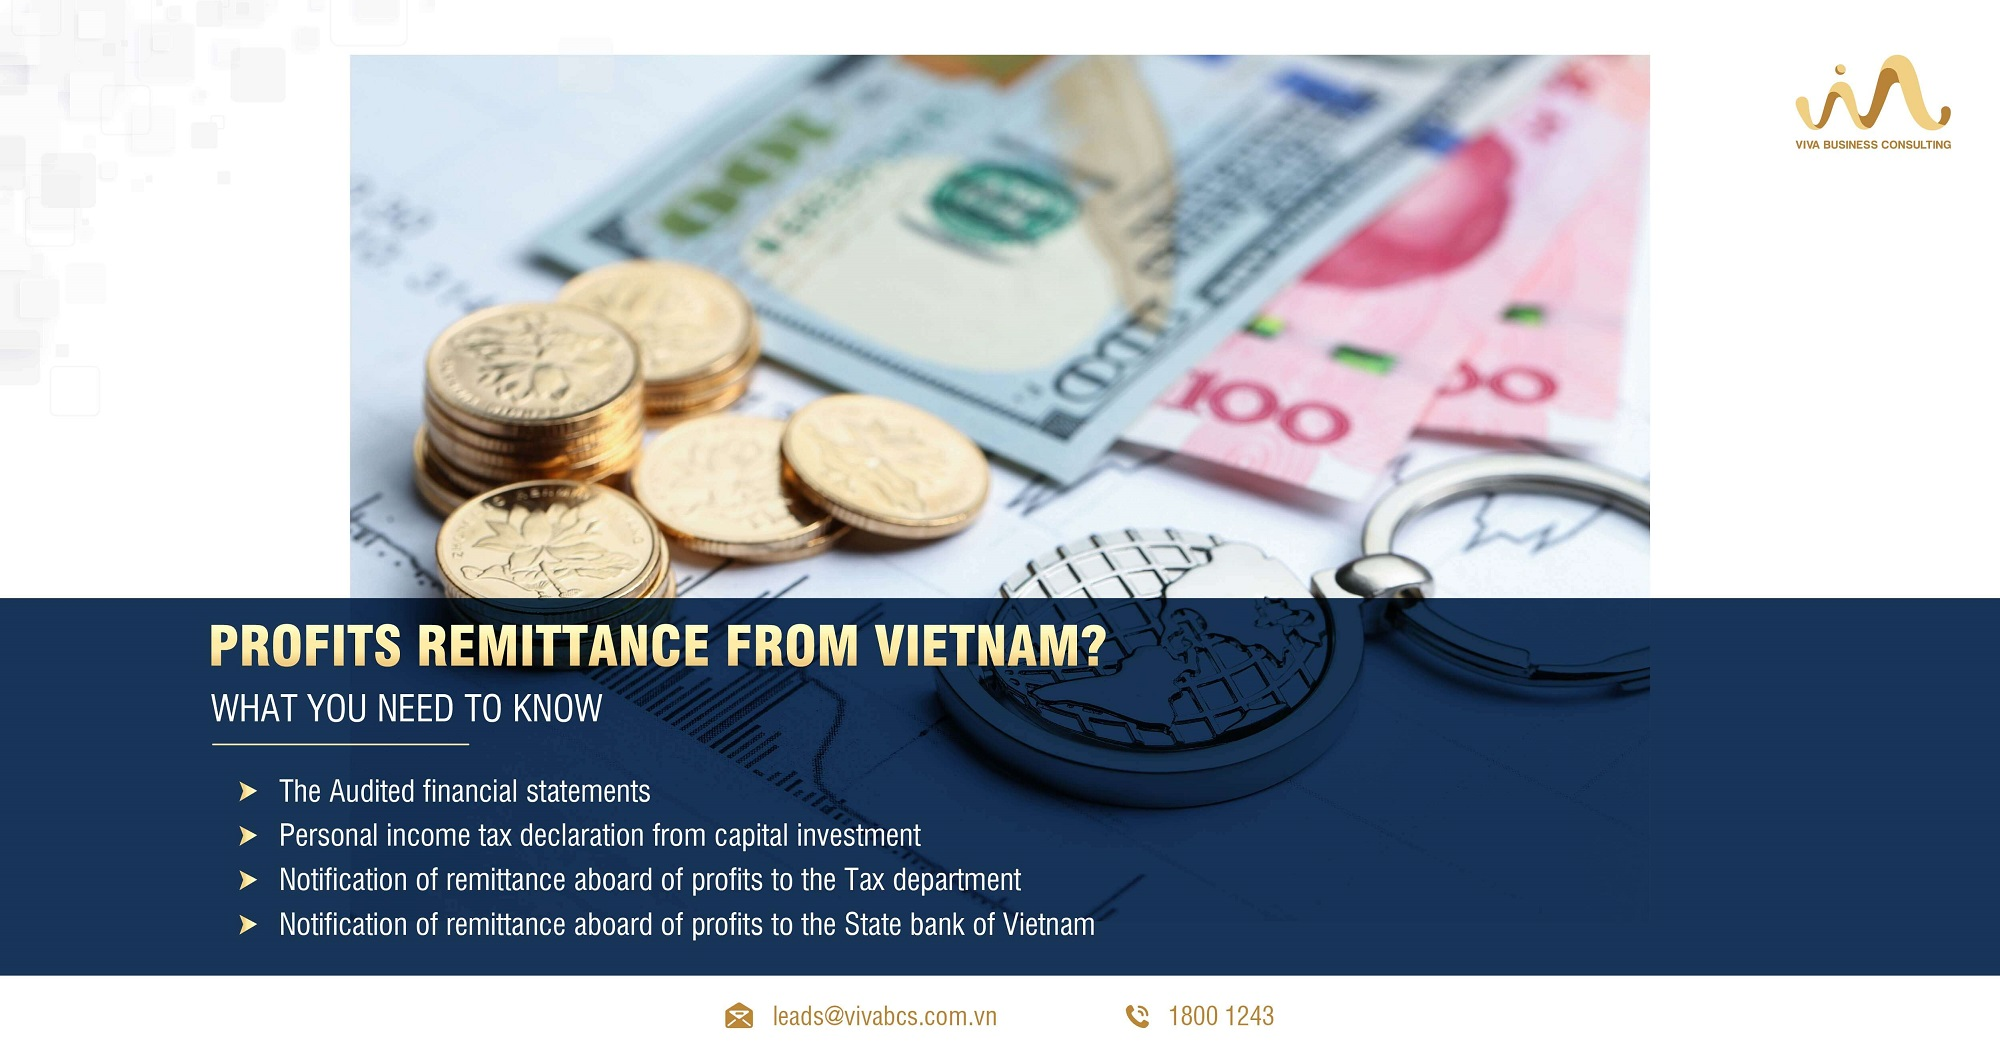 Investment in Vietnam: Profits remitted abroad